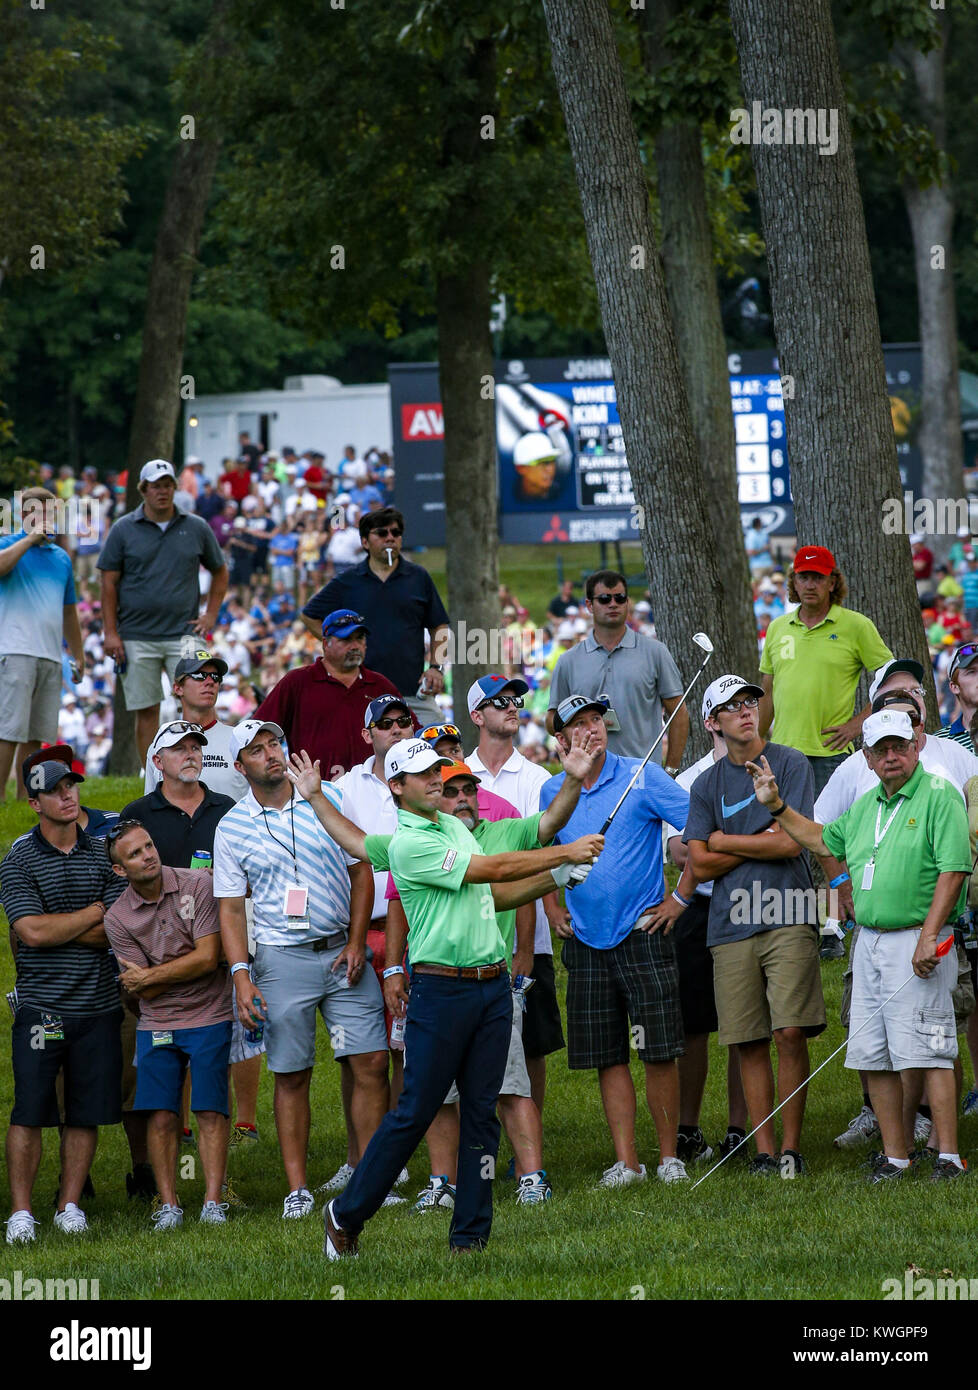 Davenport, Iowa, USA. 14th Aug, 2016. Professional Golfer Ben Martin watches his ball after hitting from the rough - Stock Image